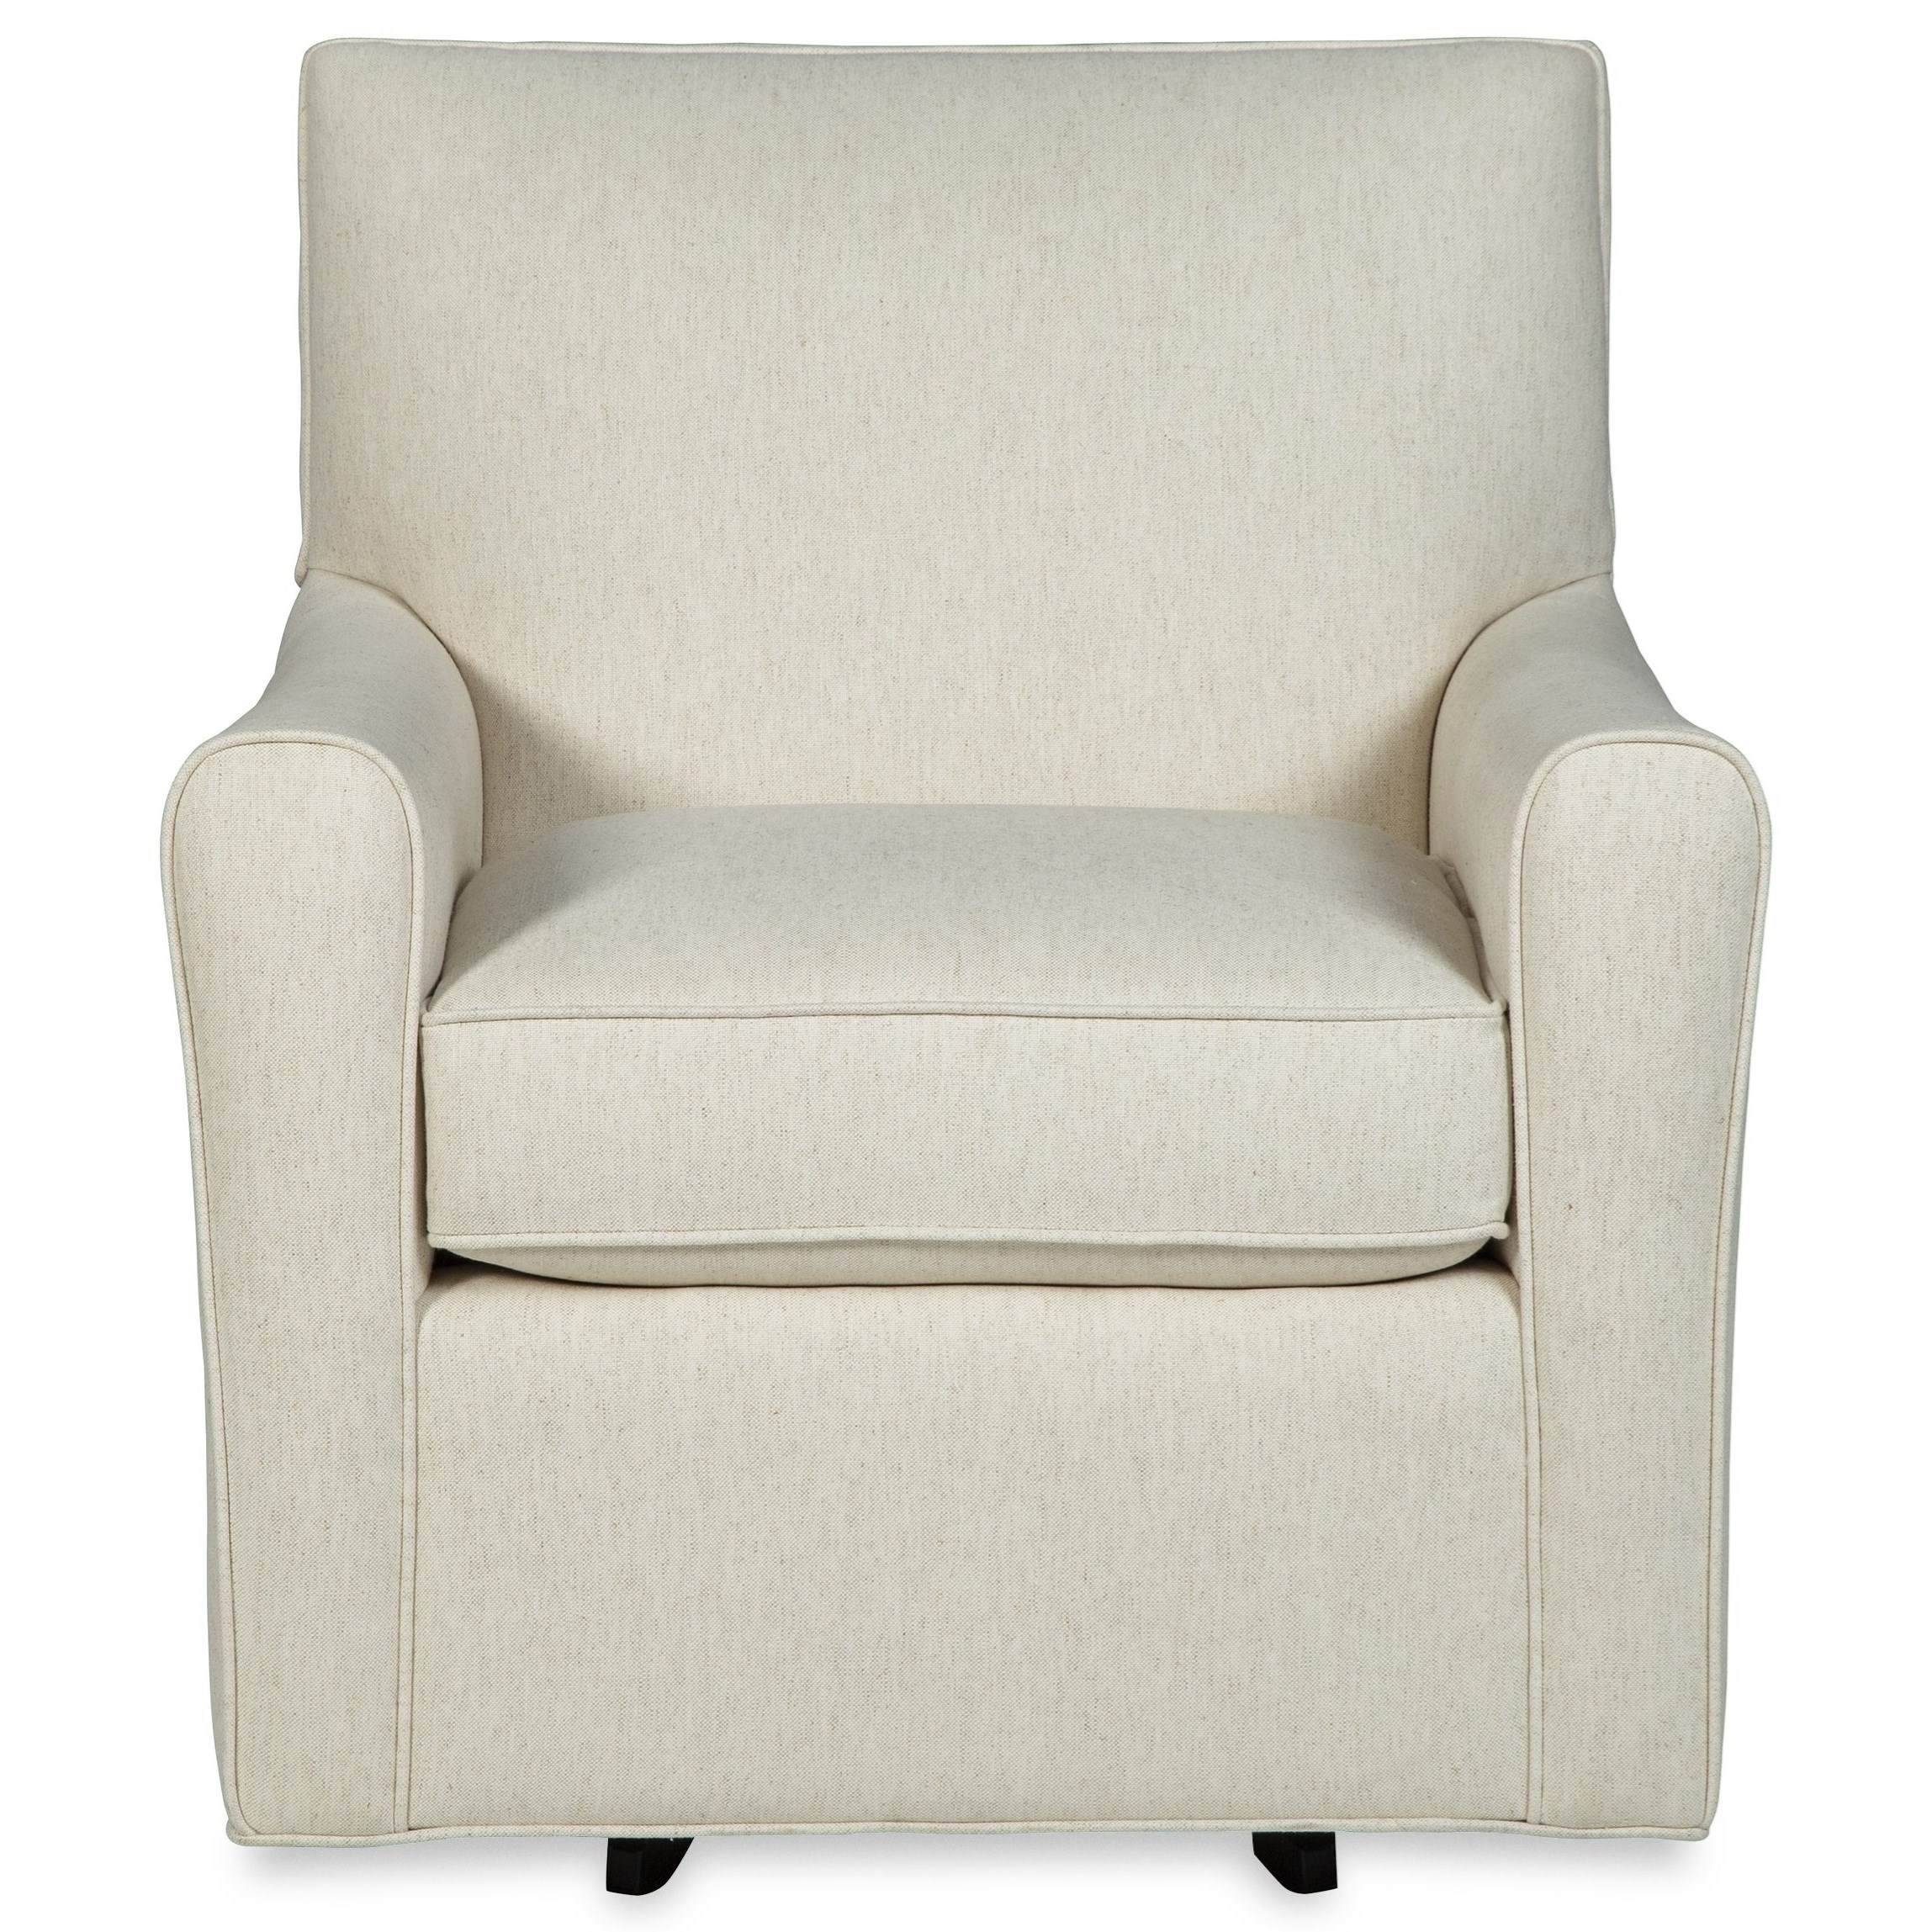 059010SG Swivel Glider by Craftmaster at Prime Brothers Furniture